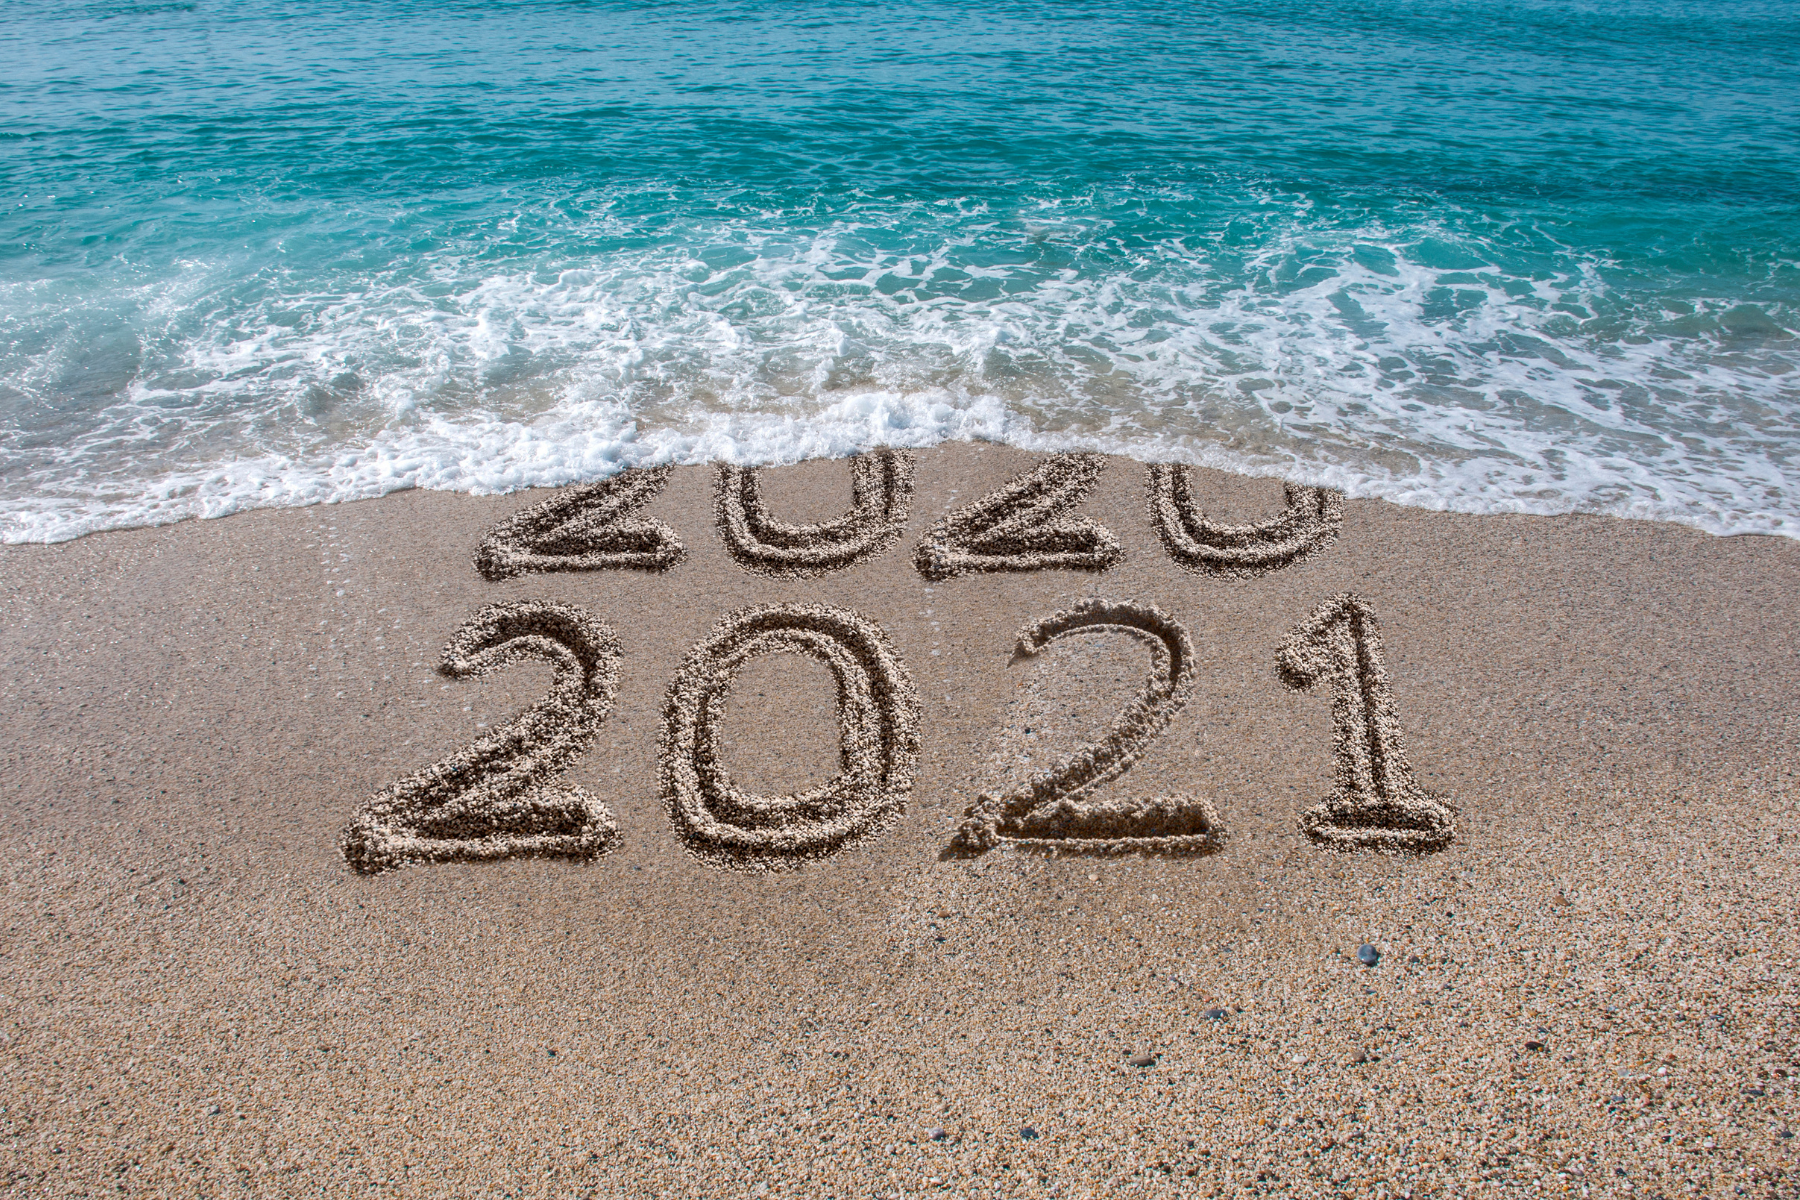 2020 turning into 2021 on a beach